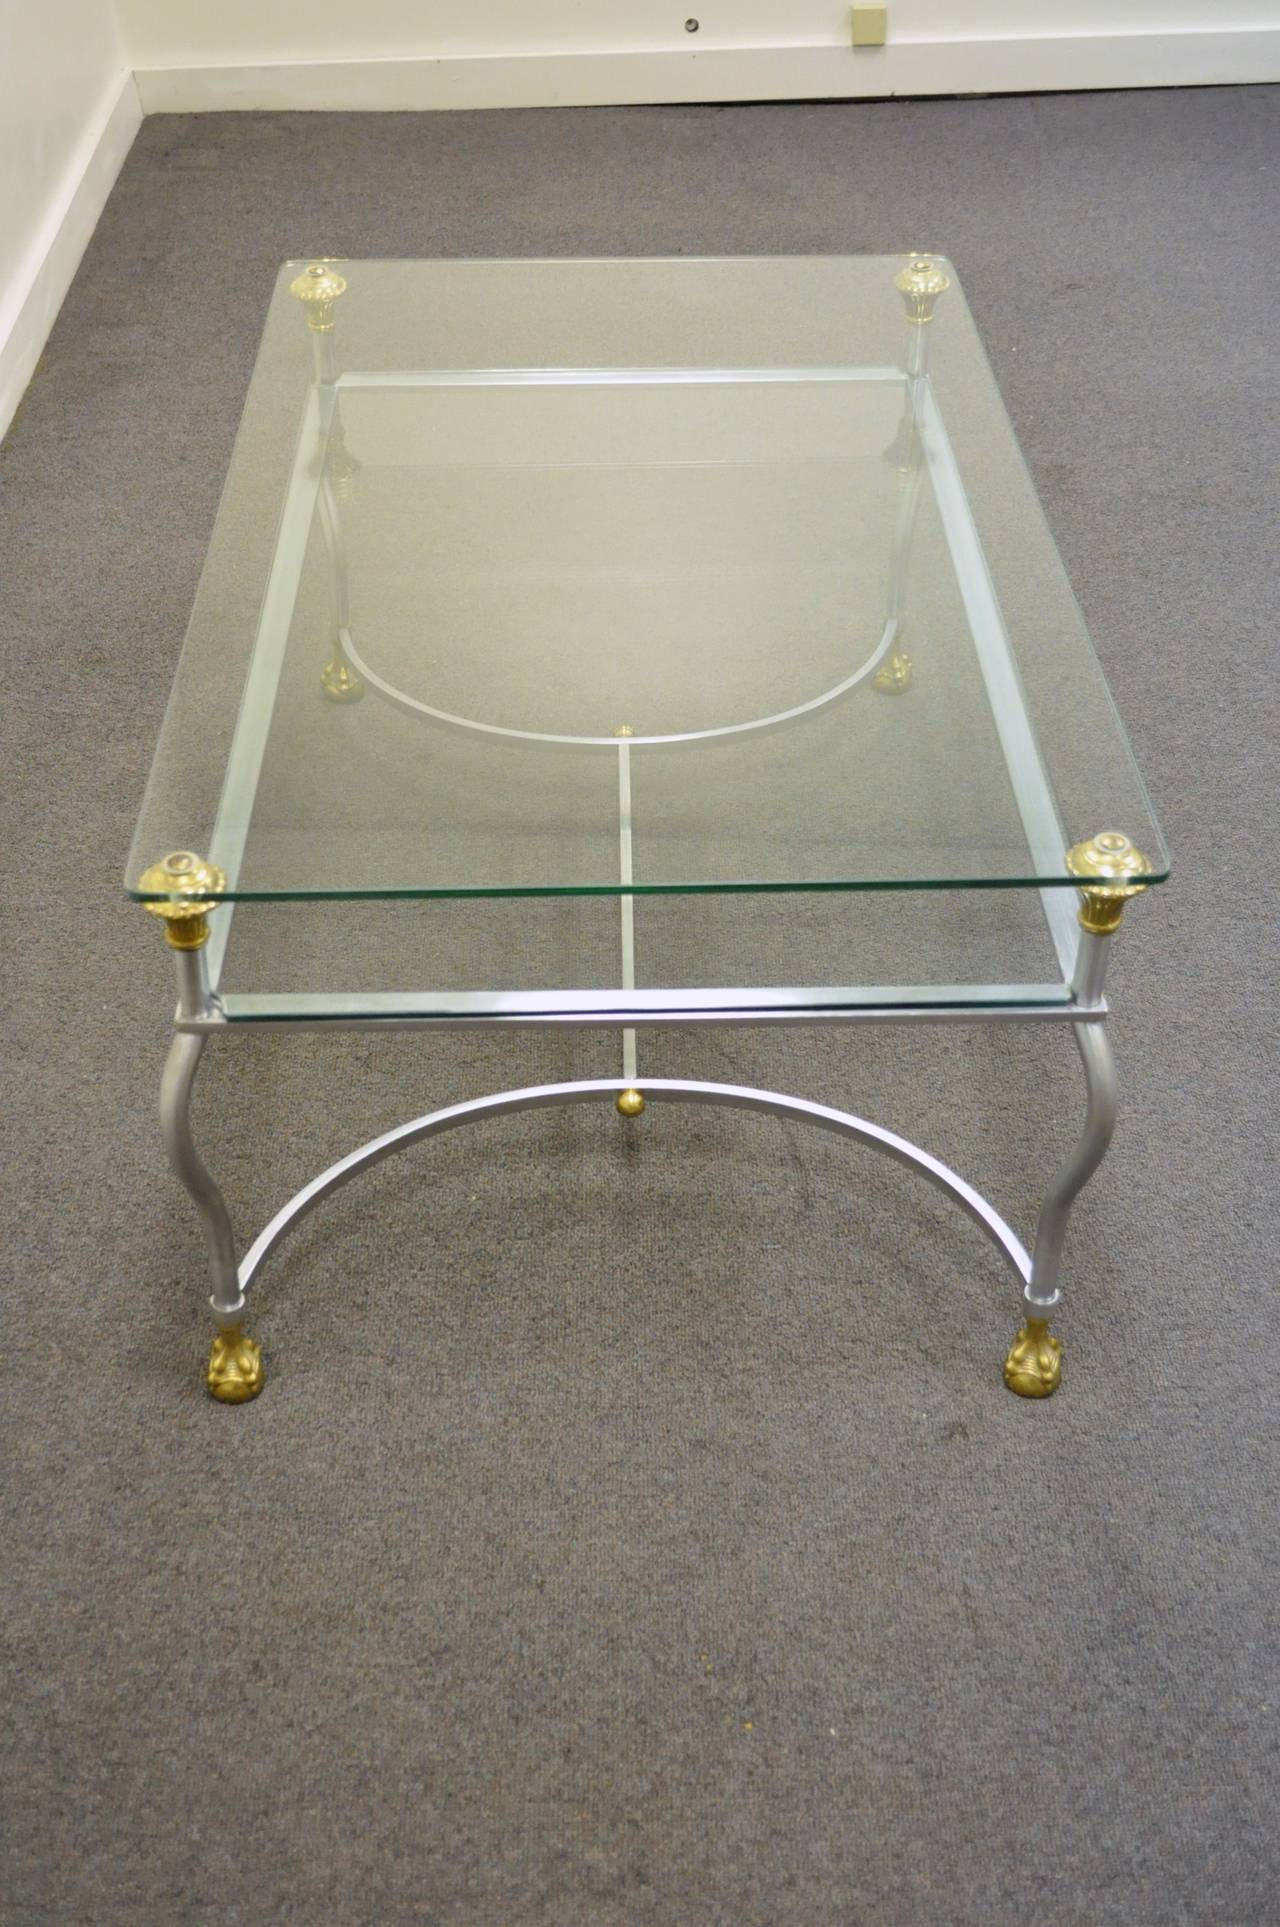 rare brass brushed steel and glass claw foot coffee table after maison jansen for sale at 1stdibs. Black Bedroom Furniture Sets. Home Design Ideas